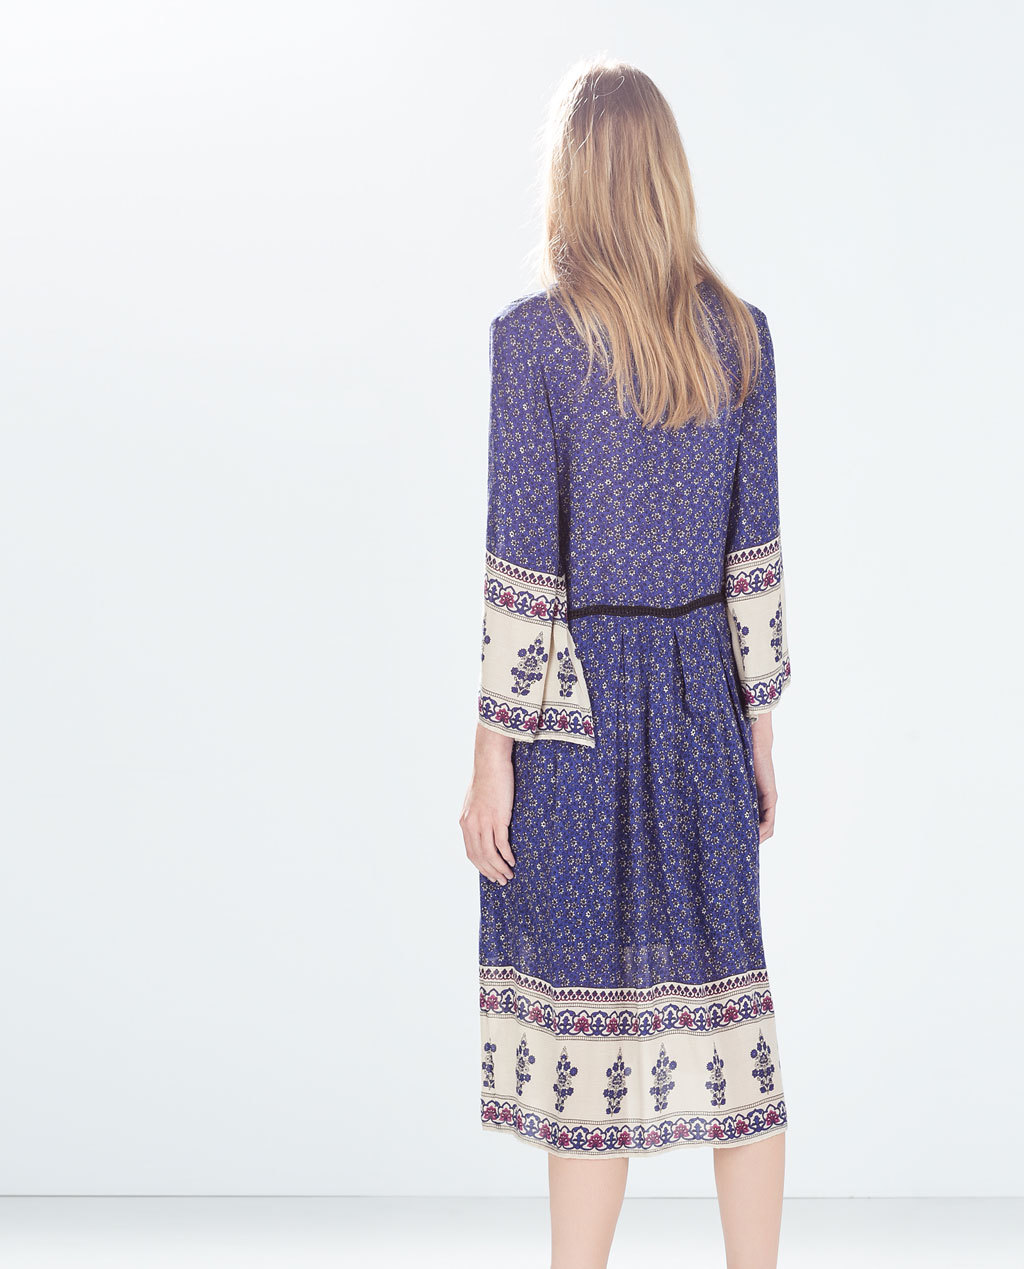 Printed Dress - style: shift; neckline: low v-neck; fit: fitted at waist; predominant colour: navy; occasions: casual, creative work; length: on the knee; fibres: cotton - 100%; sleeve length: long sleeve; sleeve style: standard; pattern type: fabric; pattern size: standard; pattern: patterned/print; texture group: other - light to midweight; season: a/w 2014